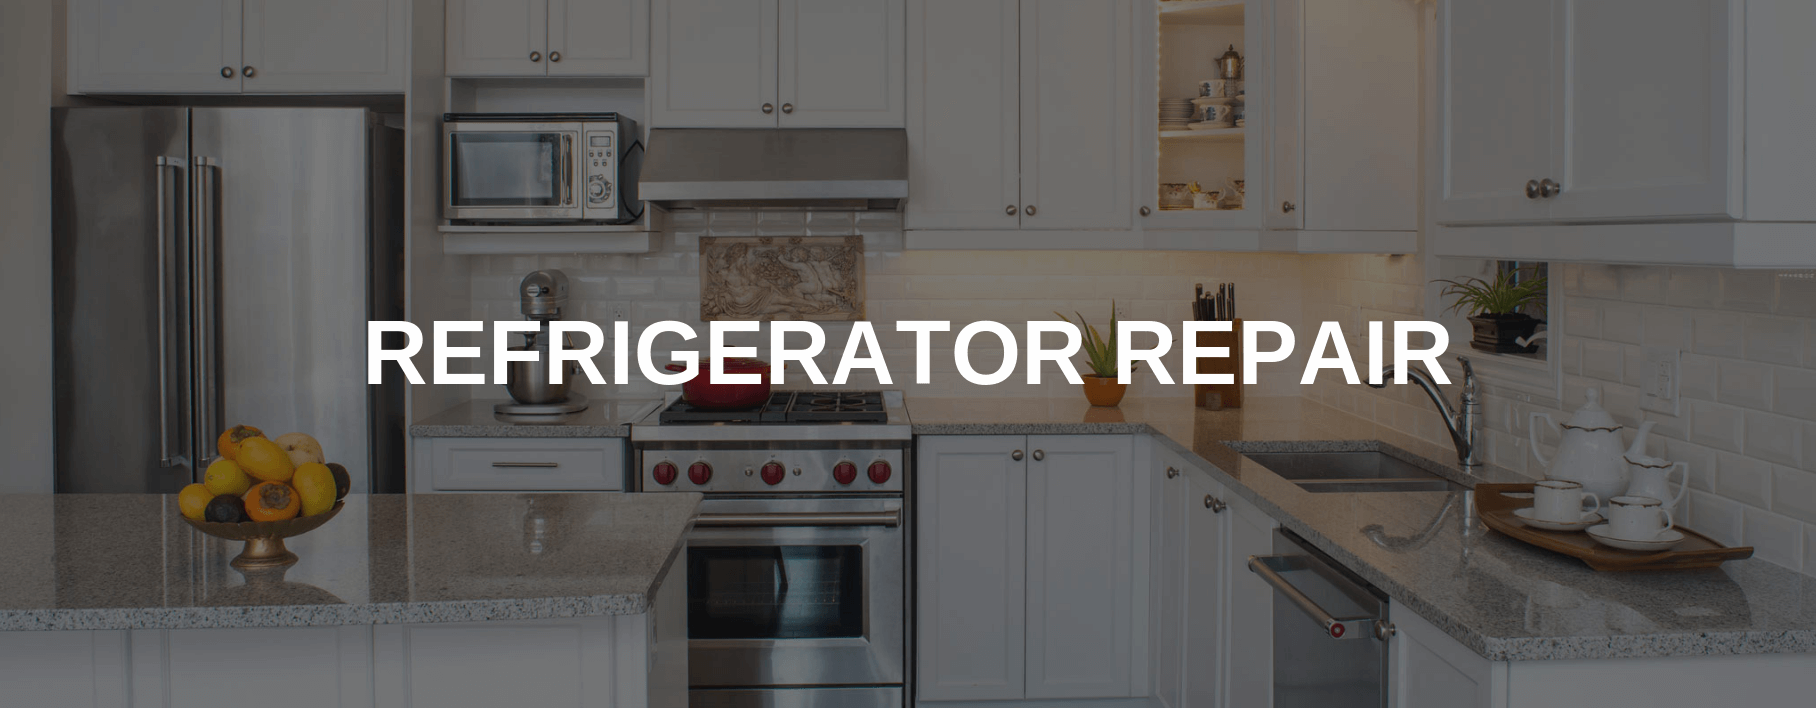 refrigerator repair southington